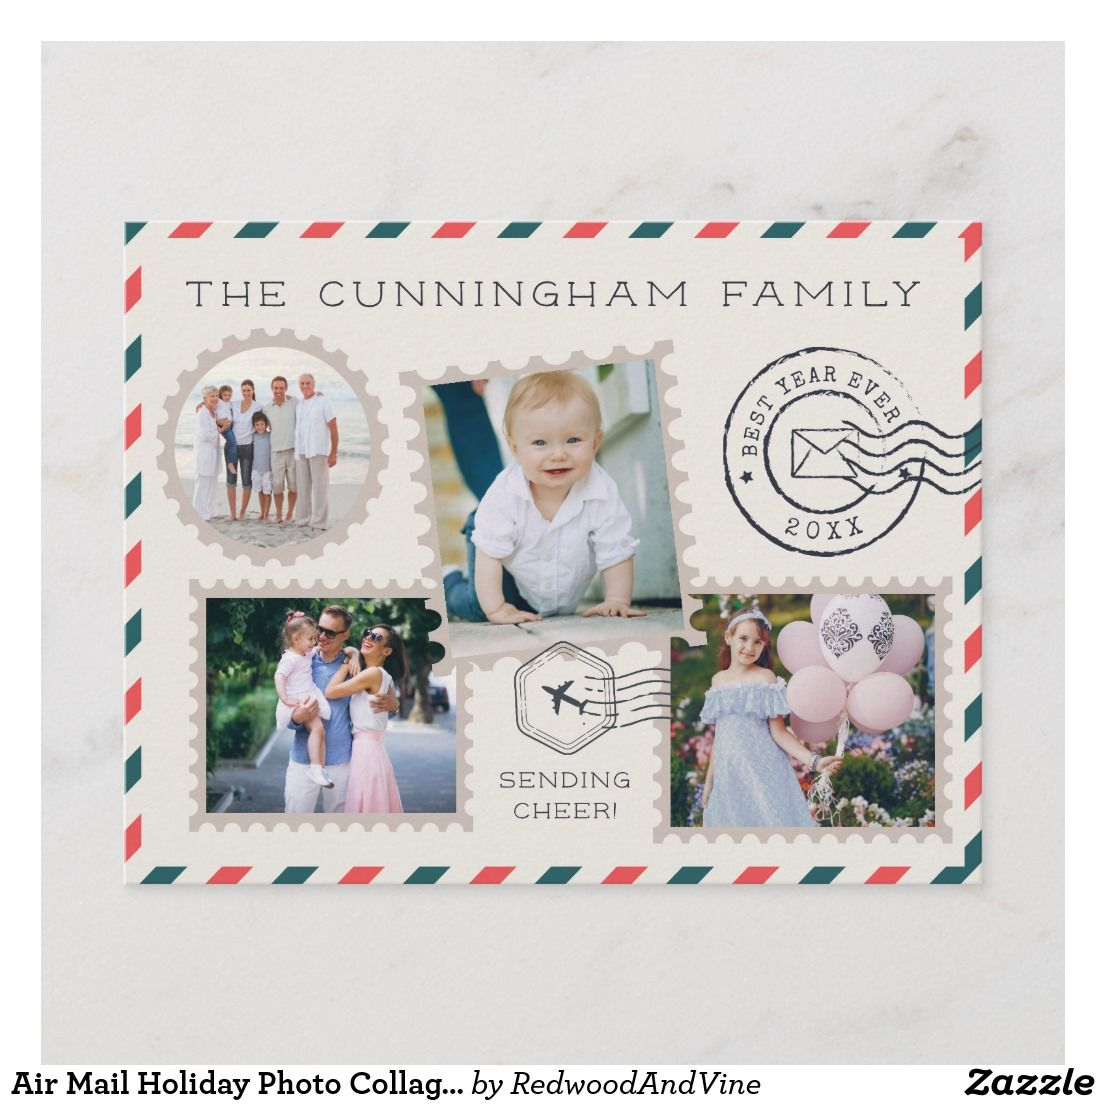 Air Mail Holiday Photo Collage Postcard Zazzle Com